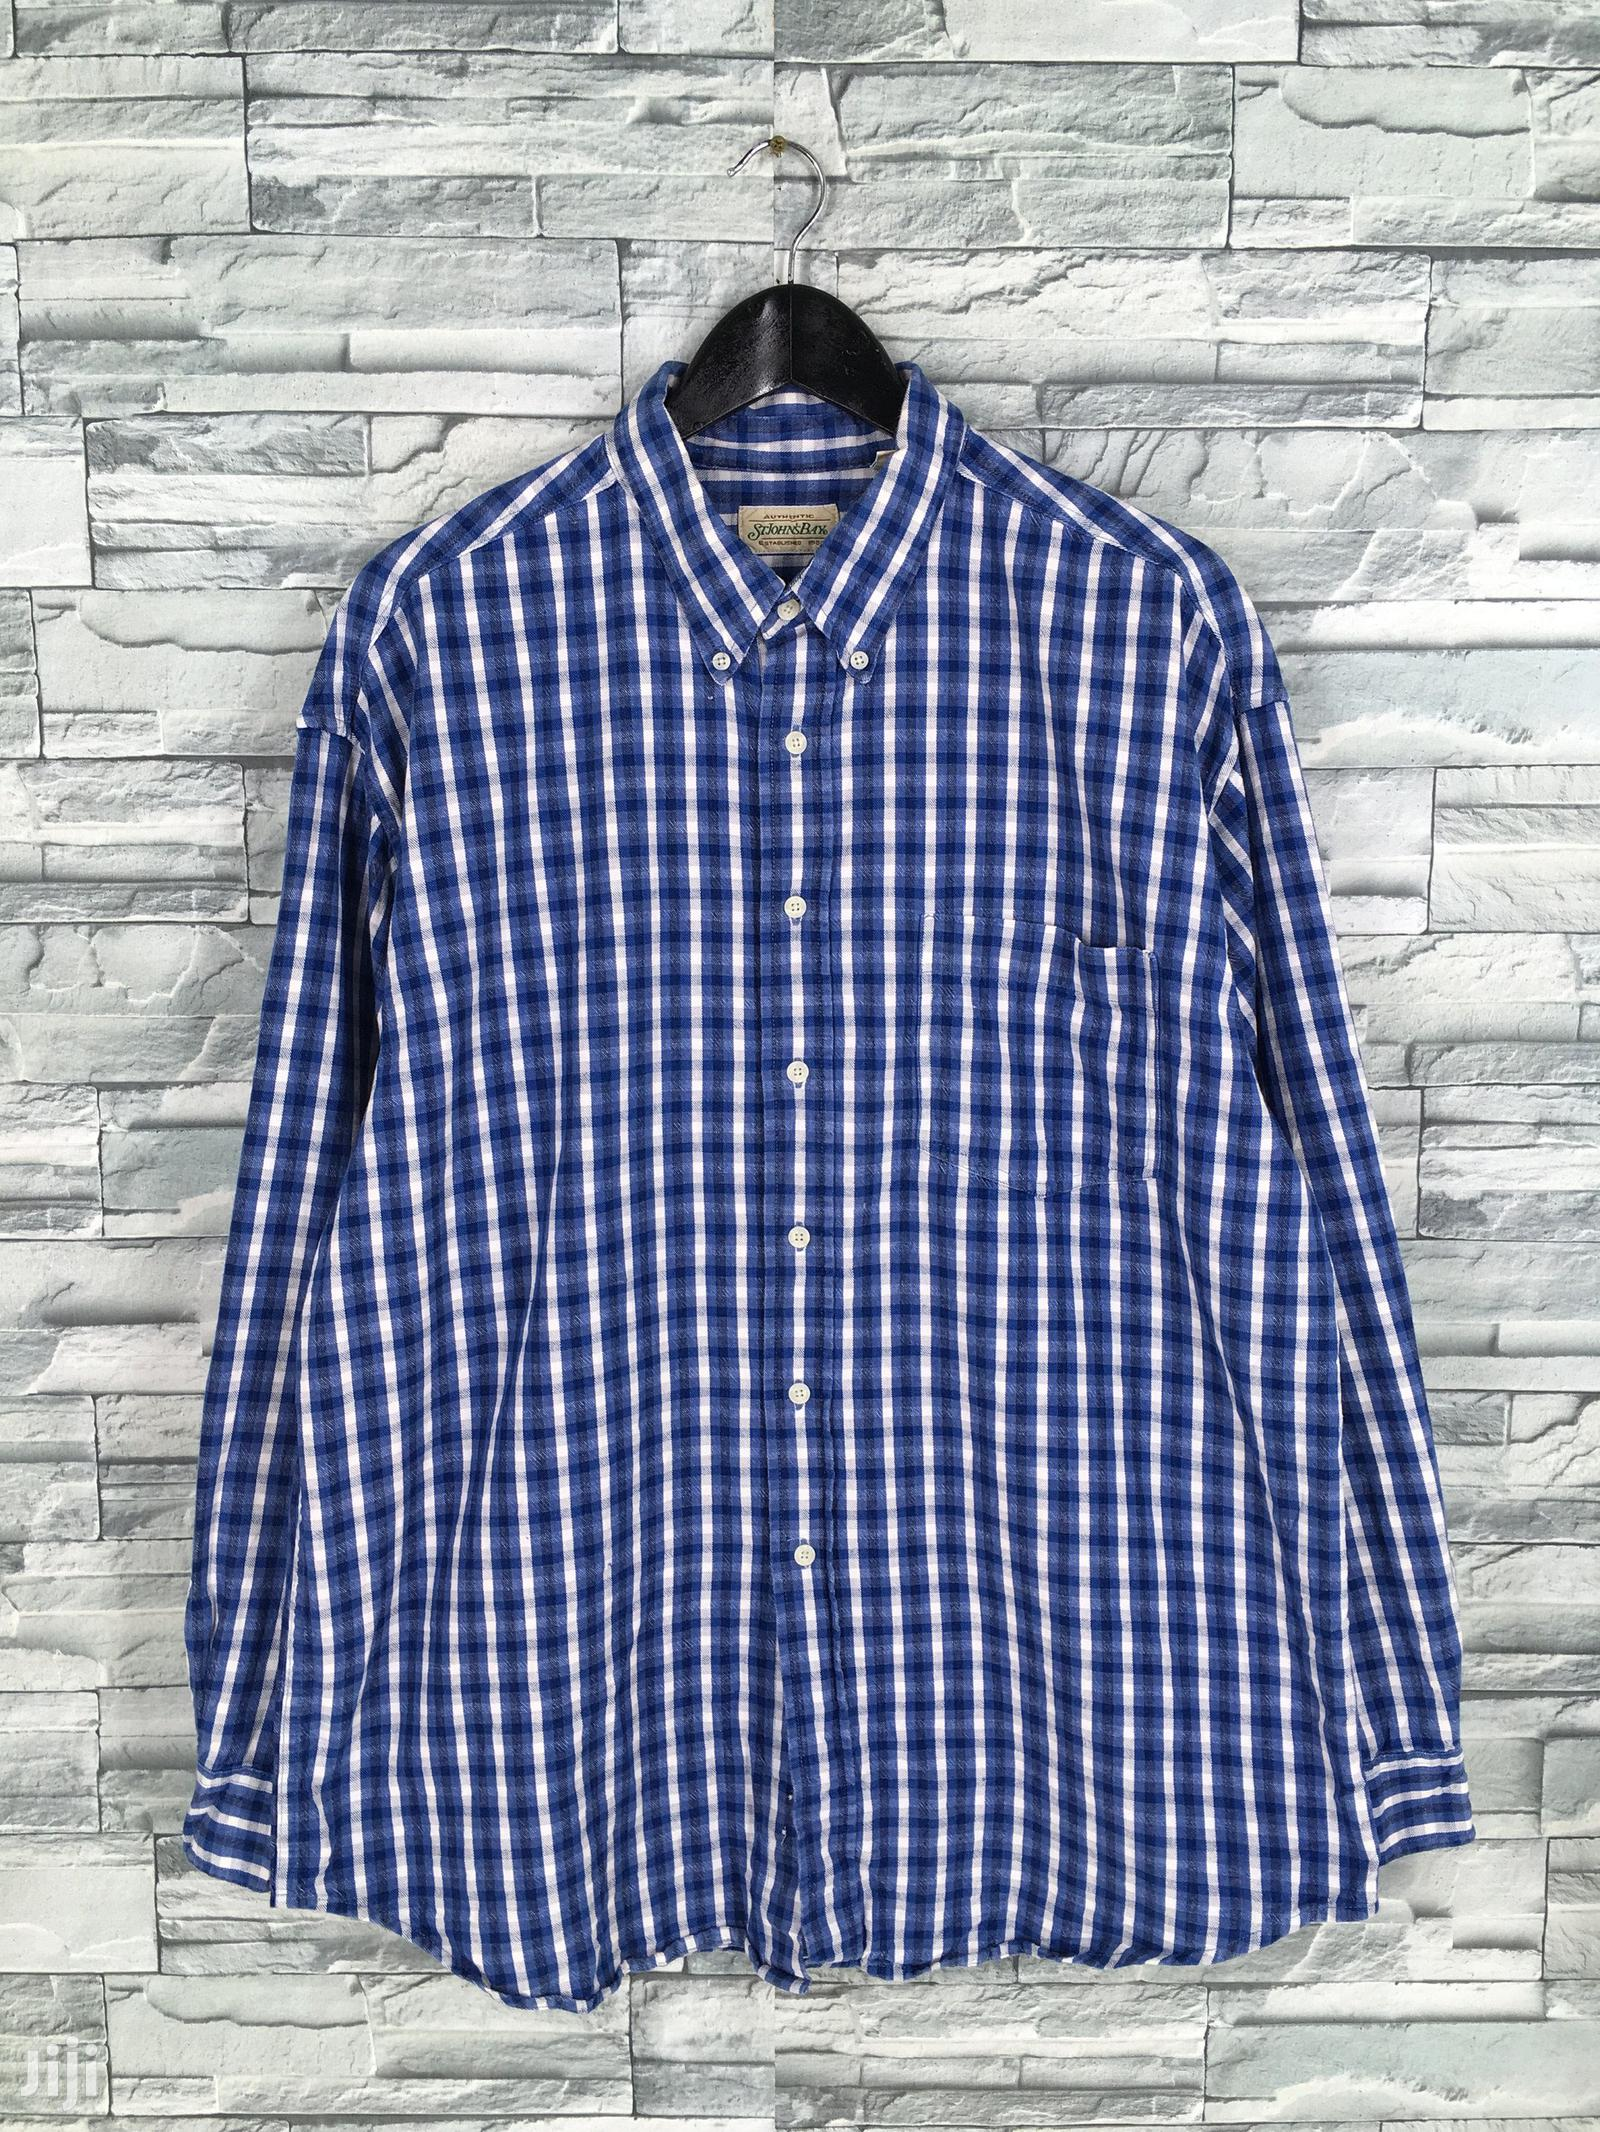 High Quality Second Hand Men's Shirts for Sale